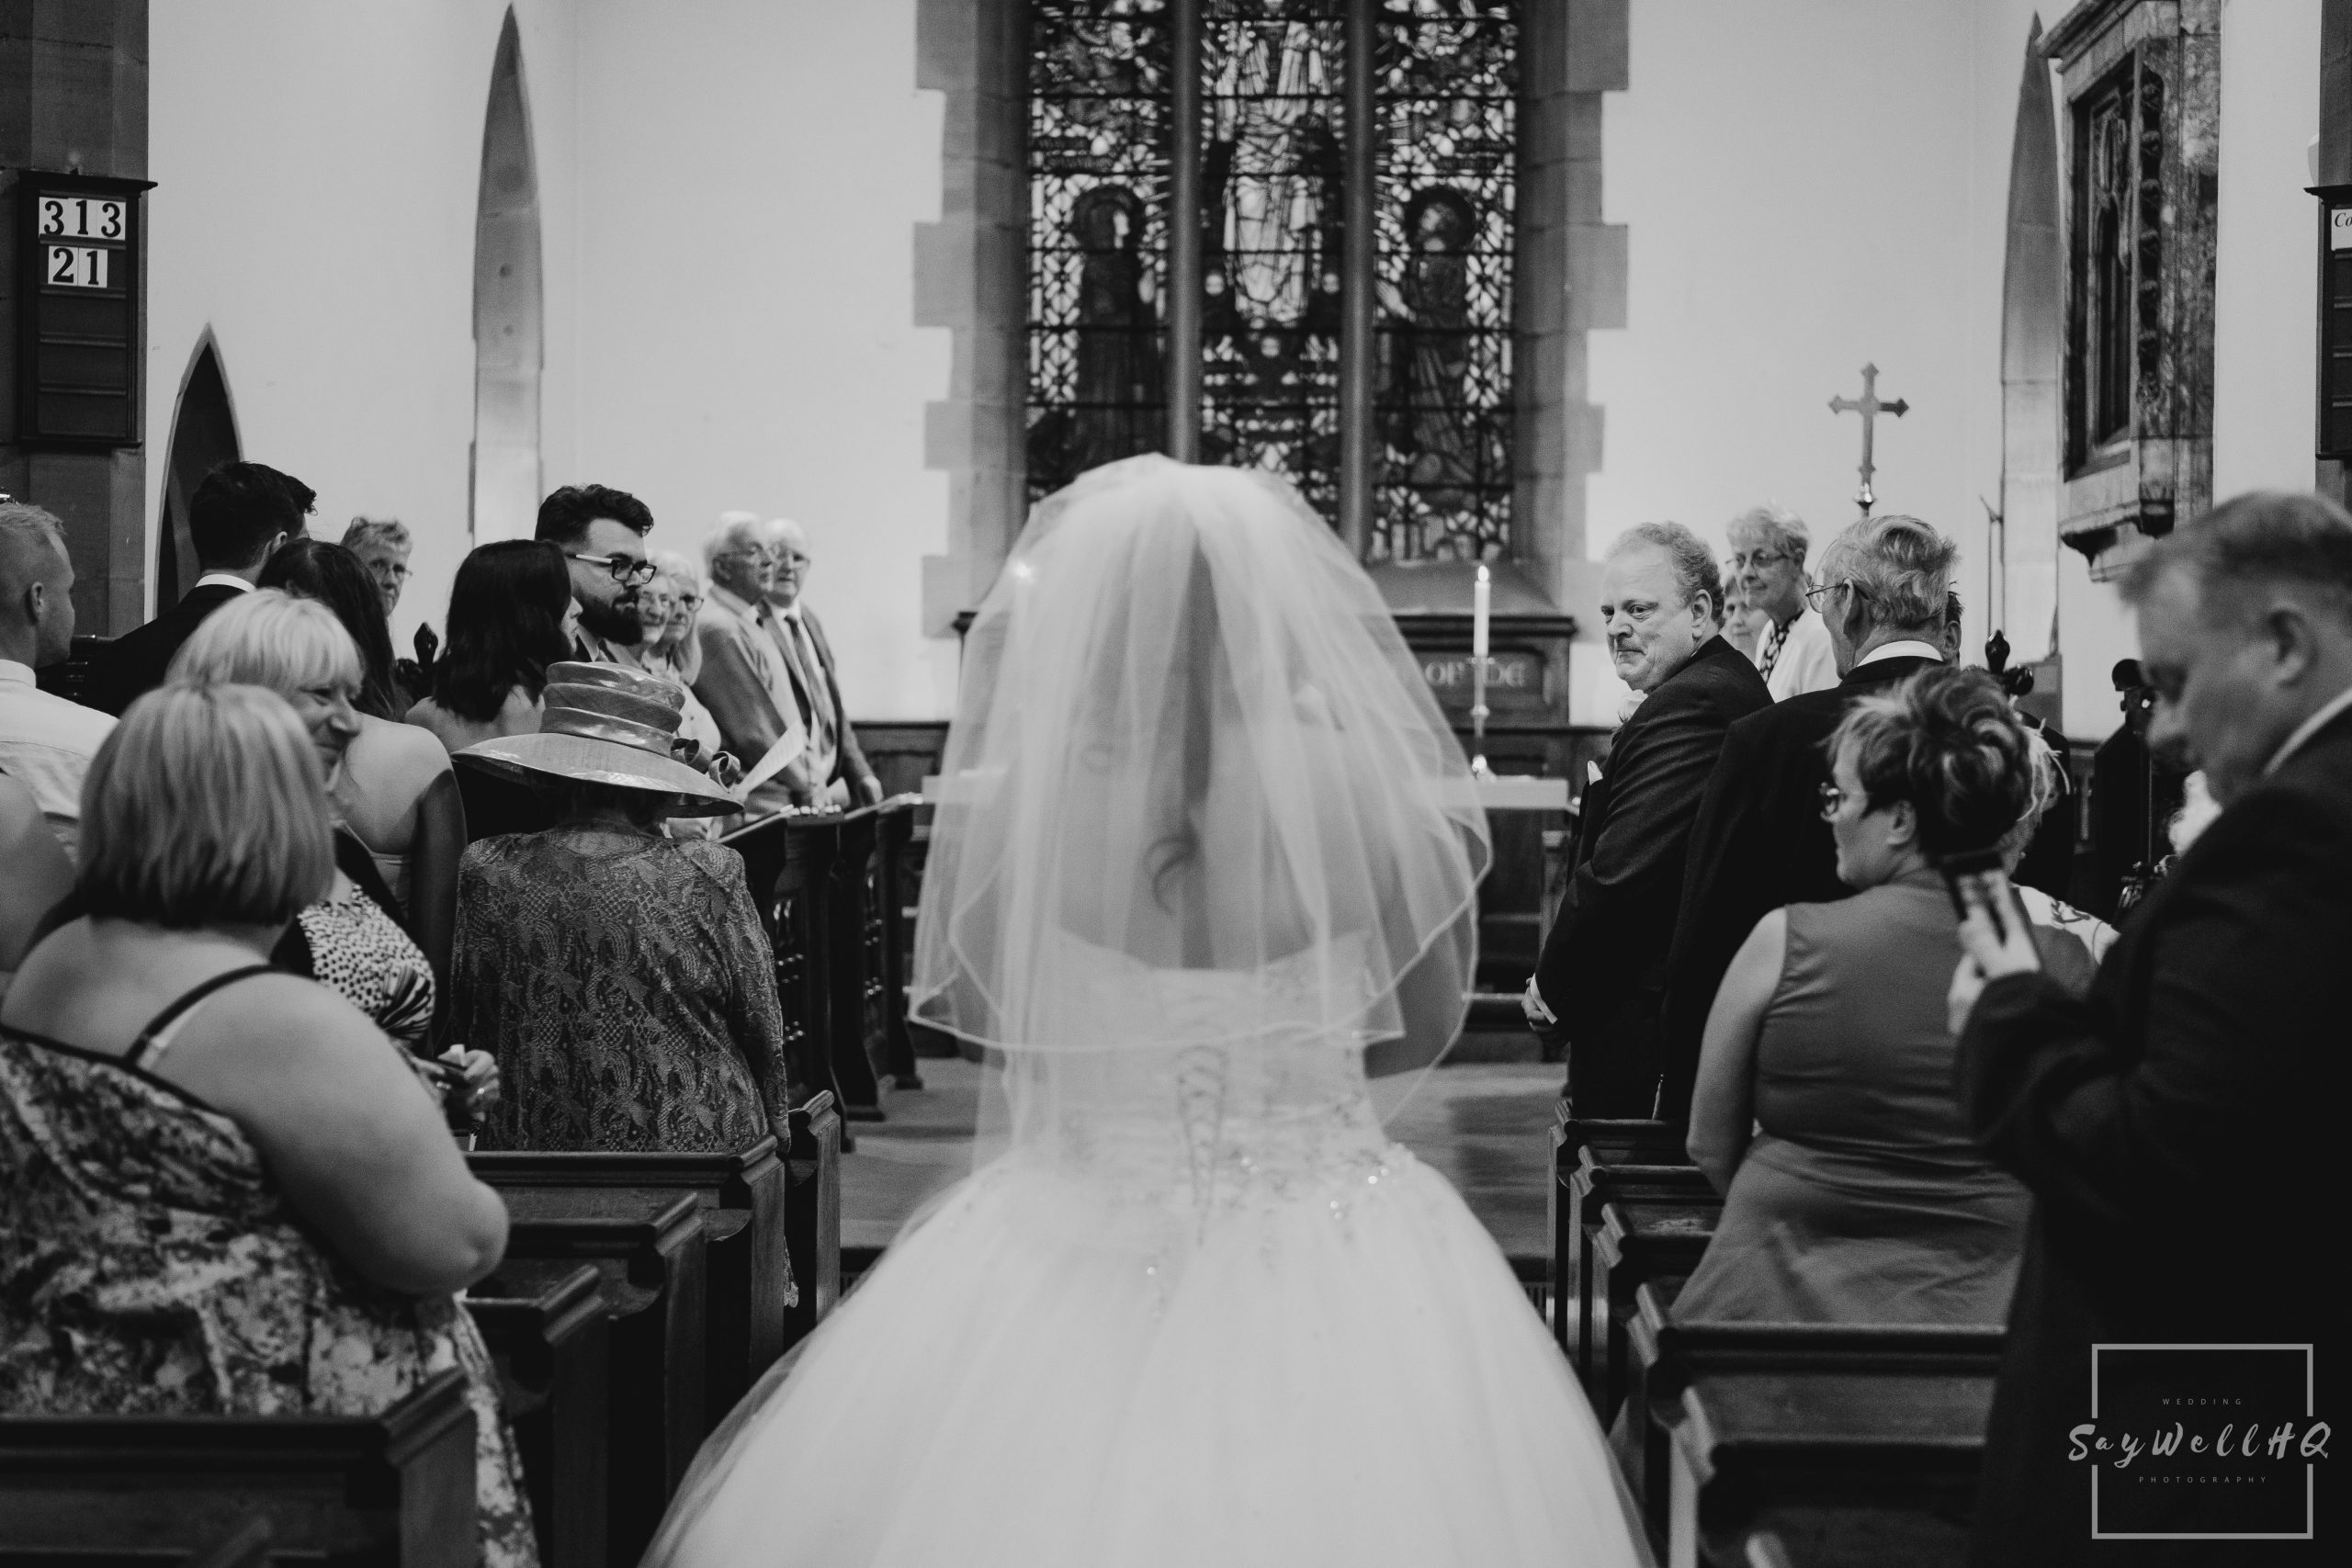 Derby Wedding Photographer - Groom looking at his bride coming down the church aisle